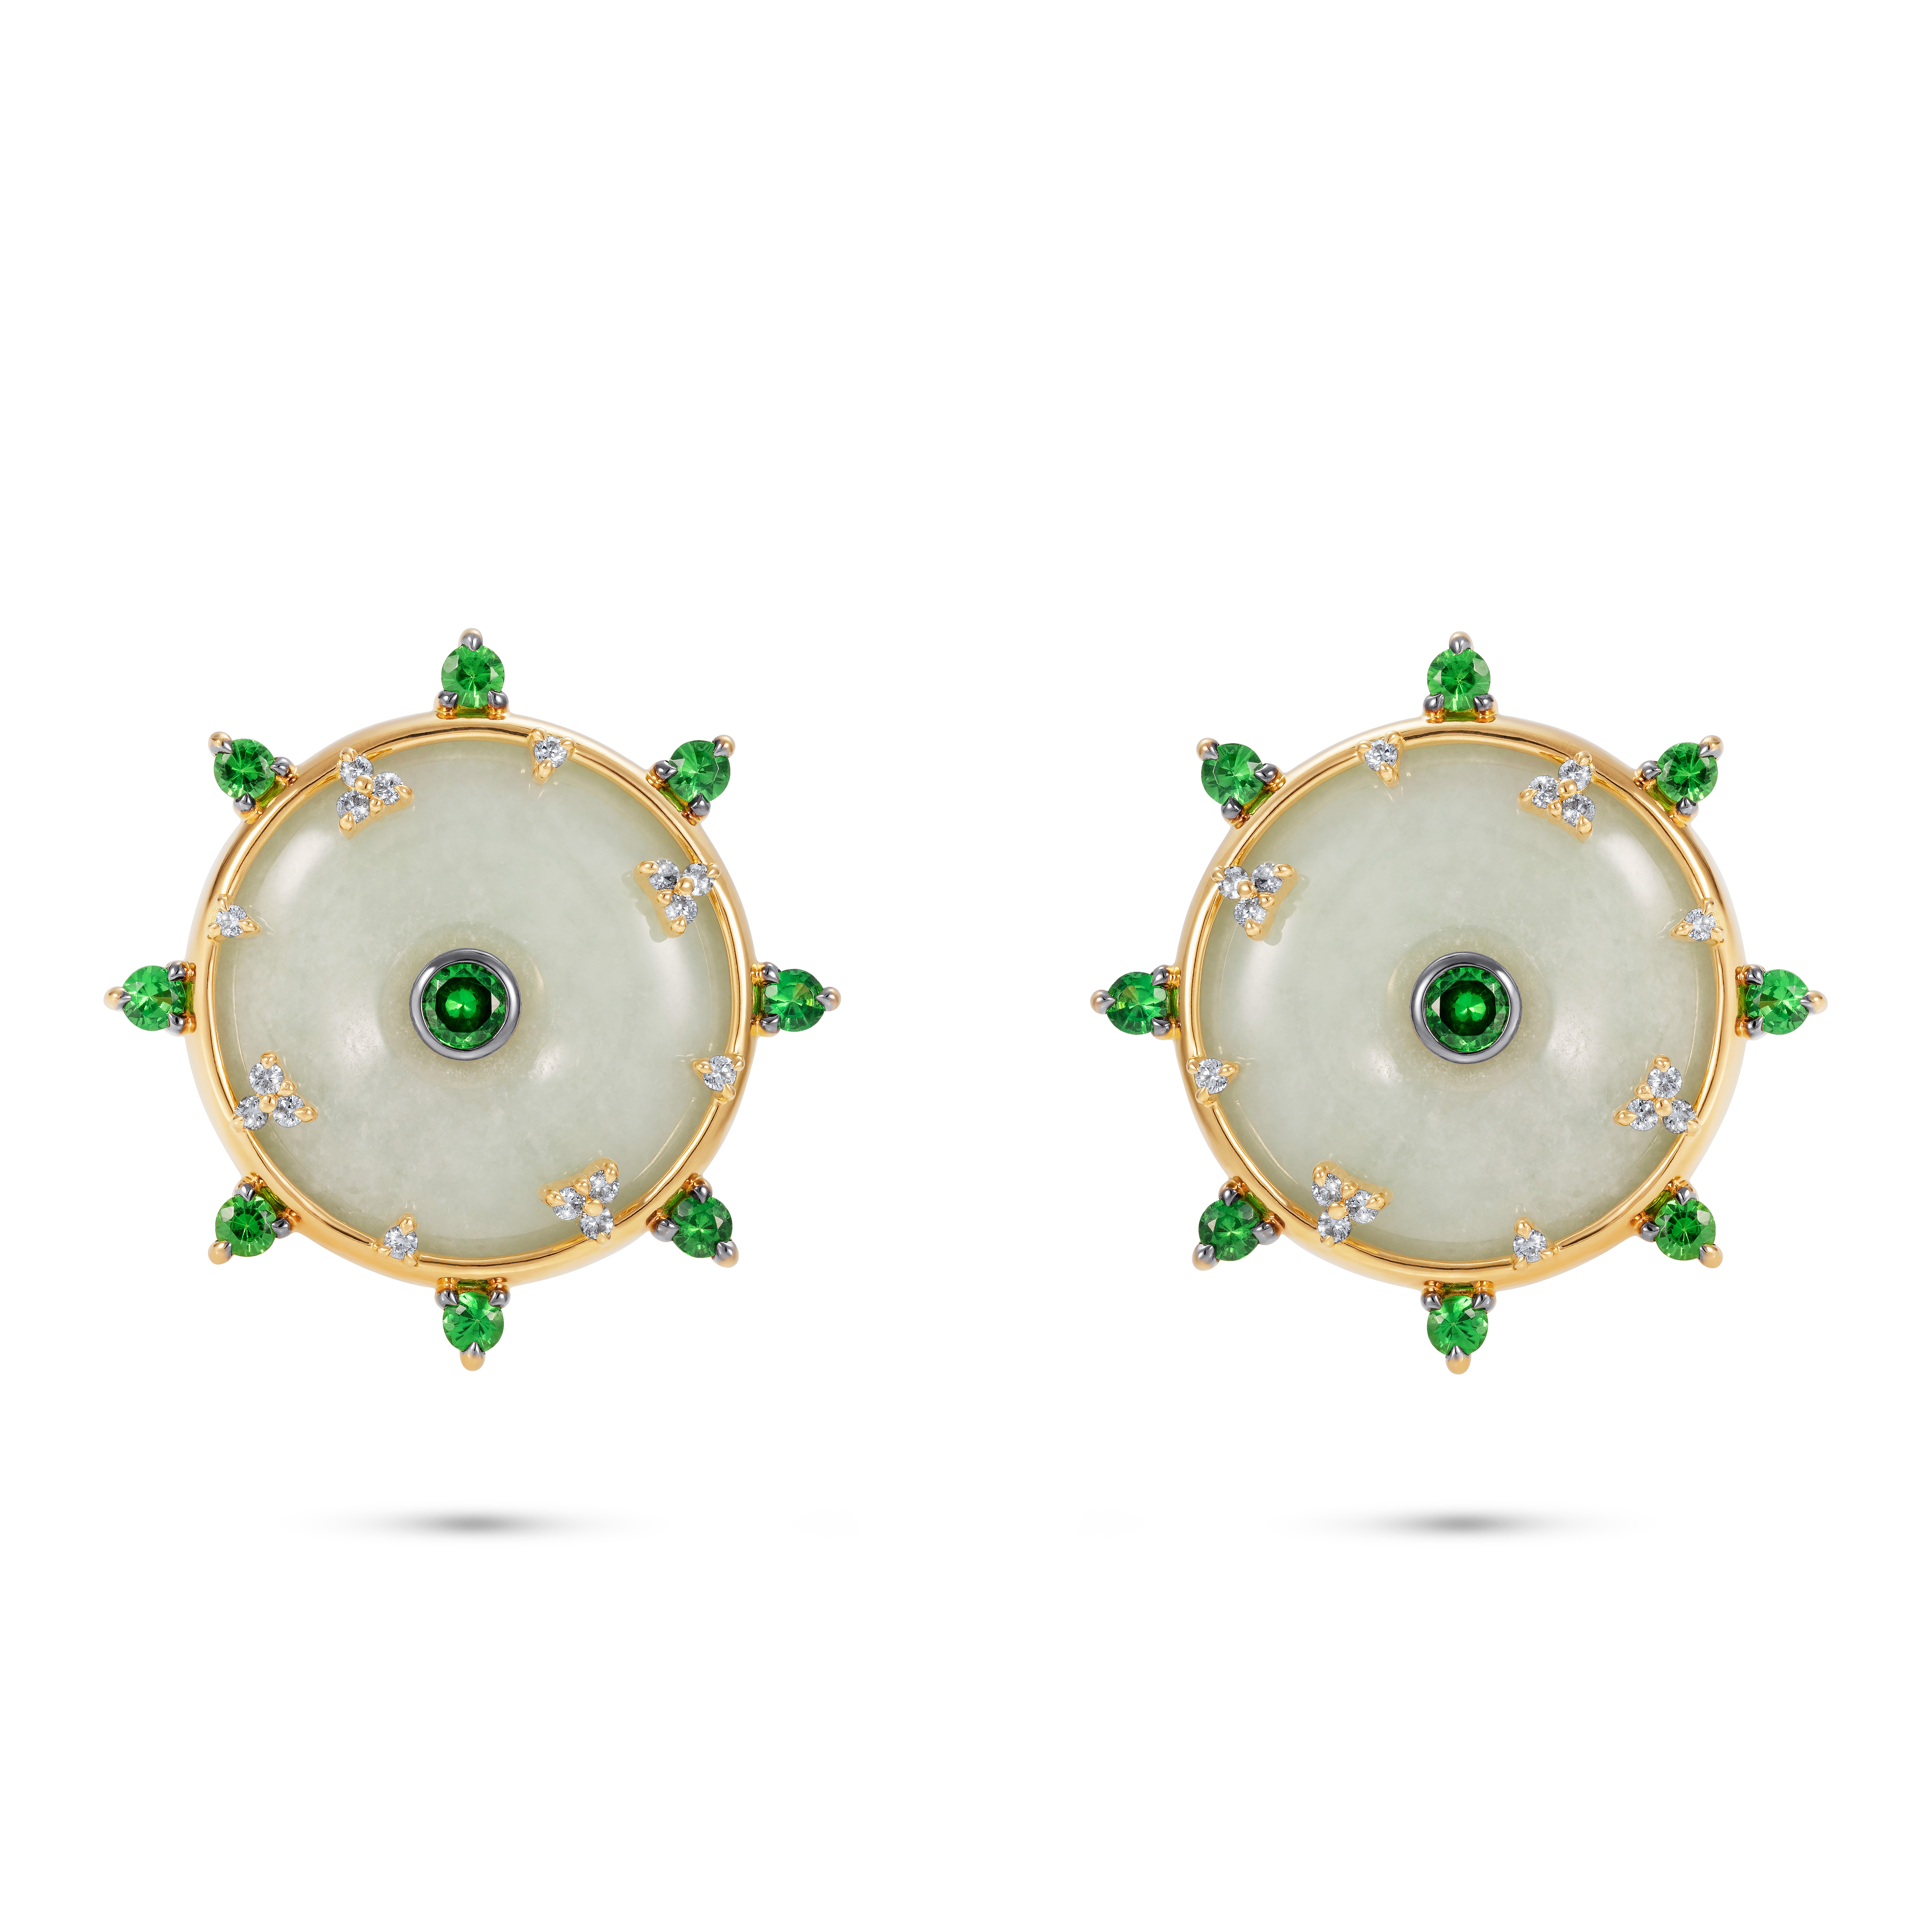 Celeste Tsavorite and Jade Earrings by Nadine Aysoy on curated-crowd.com